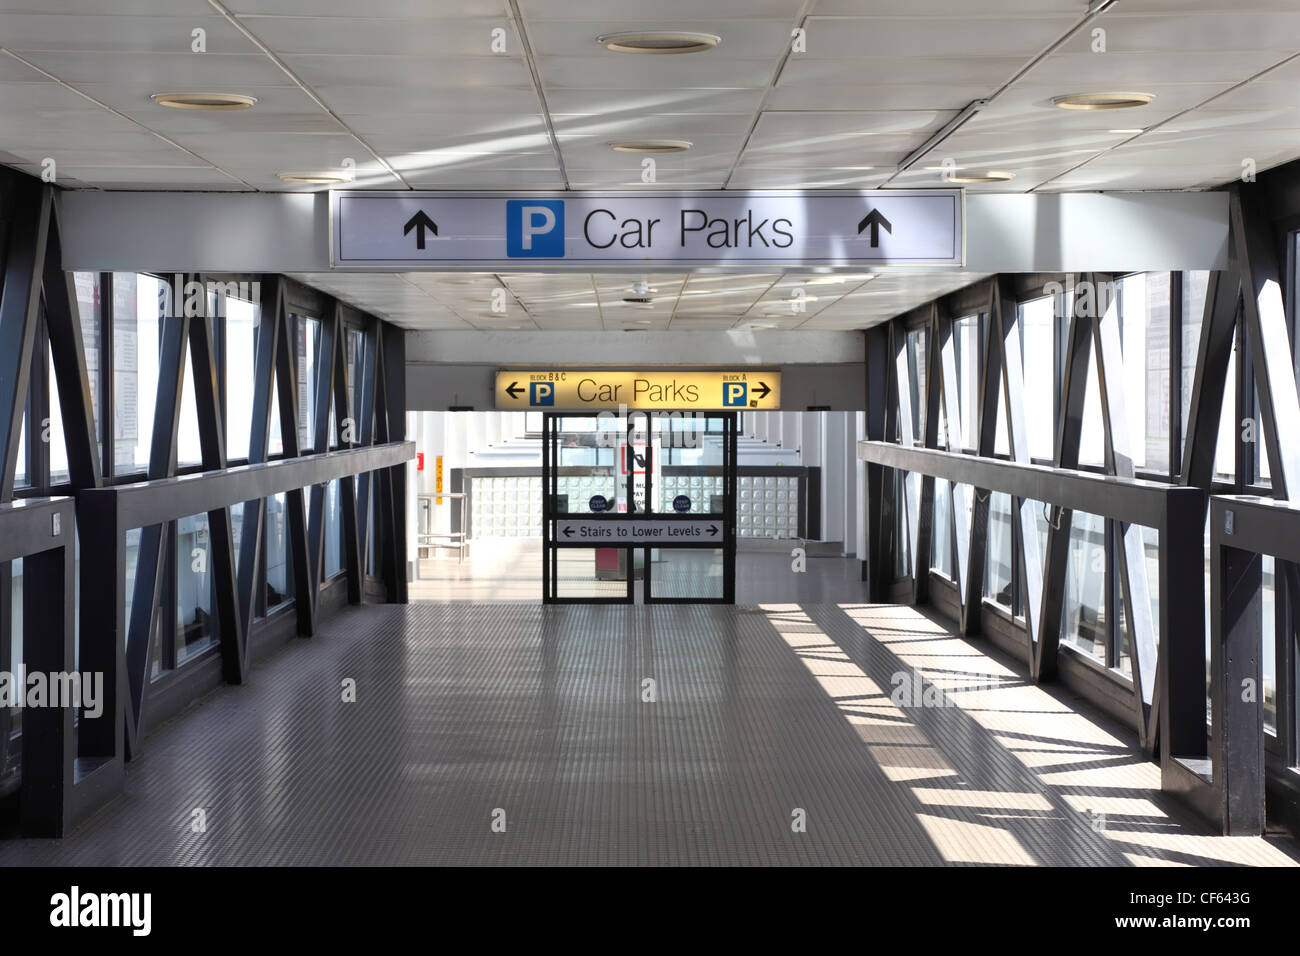 entrance to parking lot. glass doors, sunlight shines through large windows - Stock Image